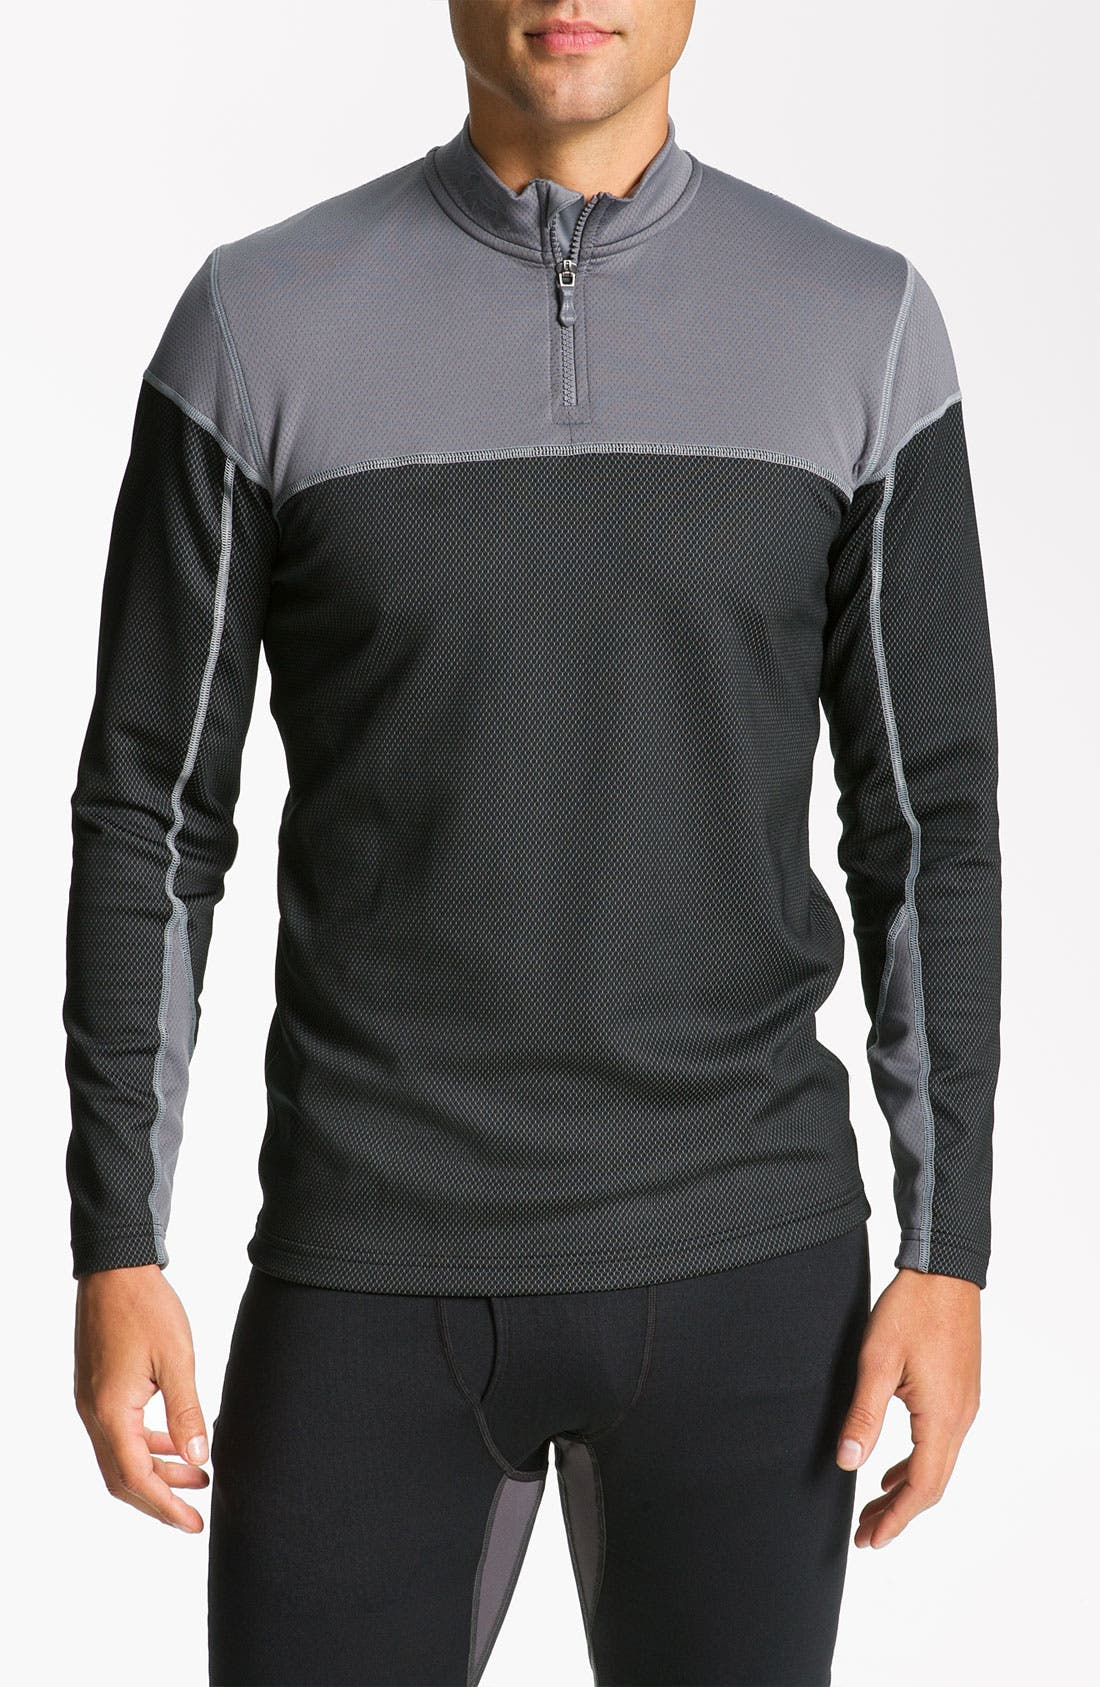 Main Image - Under Armour 'CG Thermo' Fitted Quarter Zip Running Top